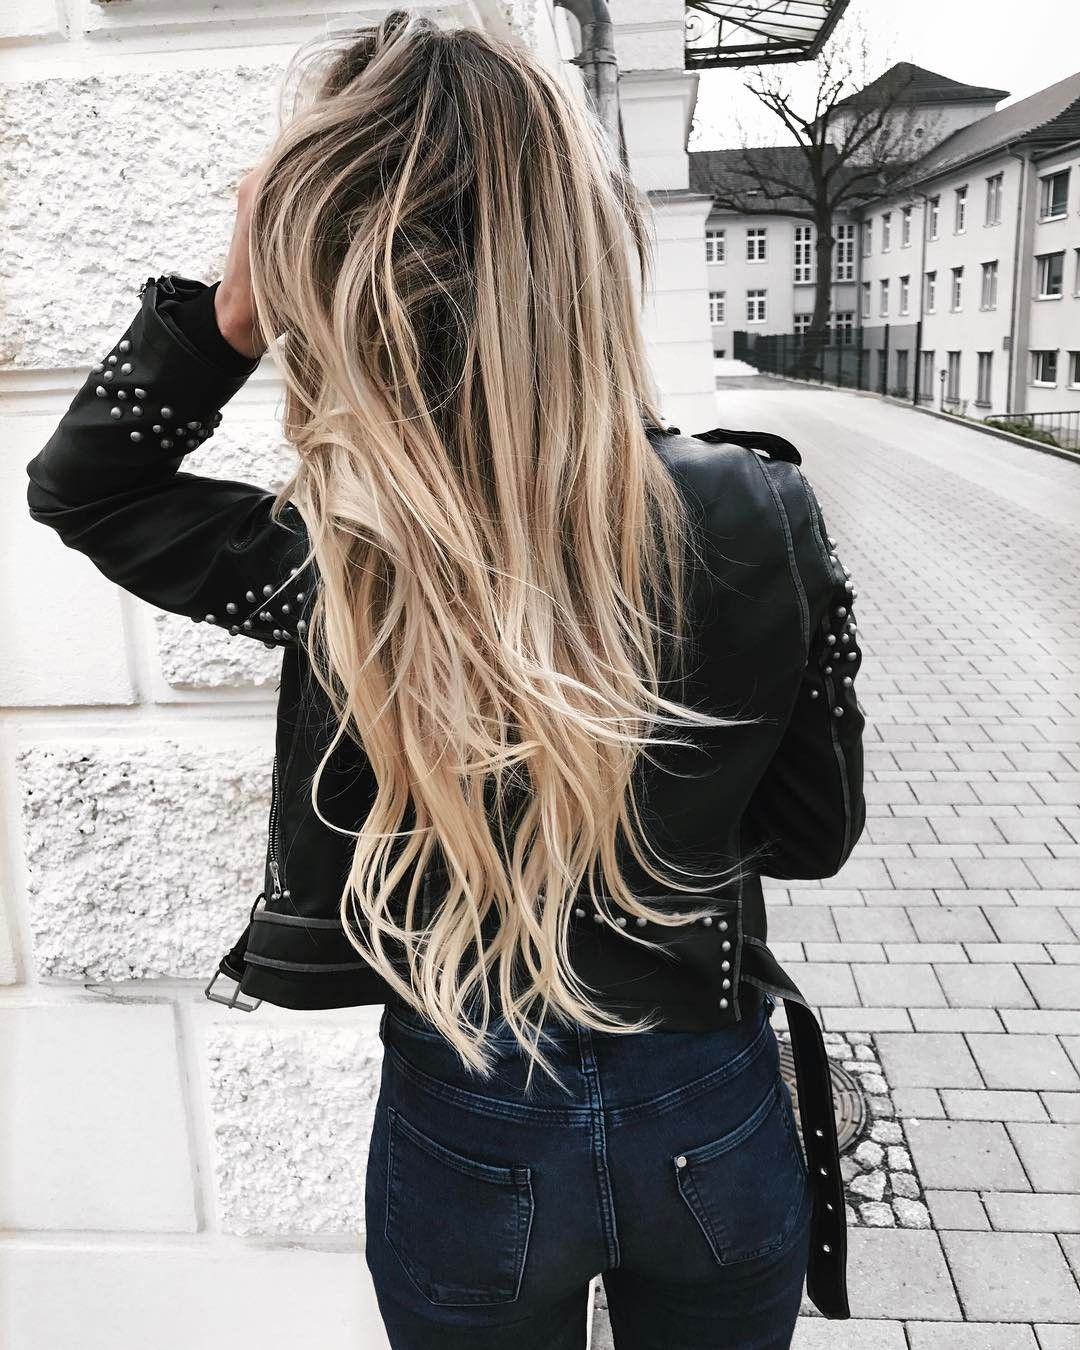 Pin by michelle chantalle on hair goals pinterest hair goals